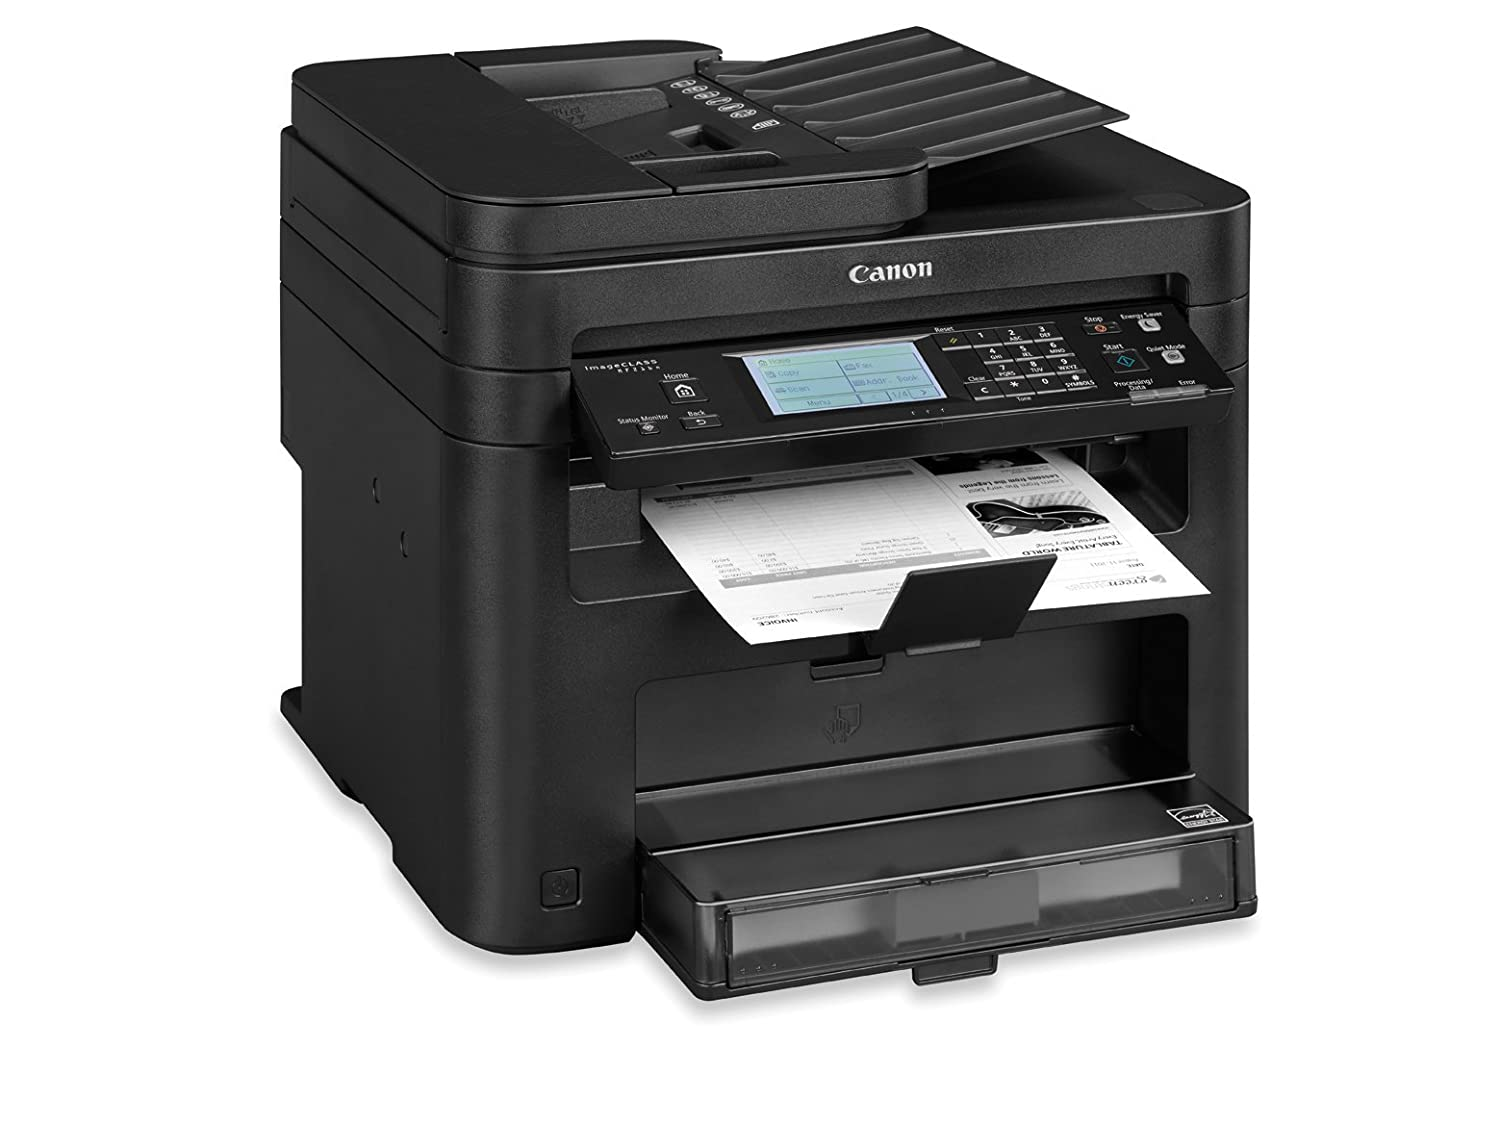 Amazon.com: Canon imageCLASS MF216n All-in-One Laser AirPrint Printer  Copier Scanner Fax: Electronics